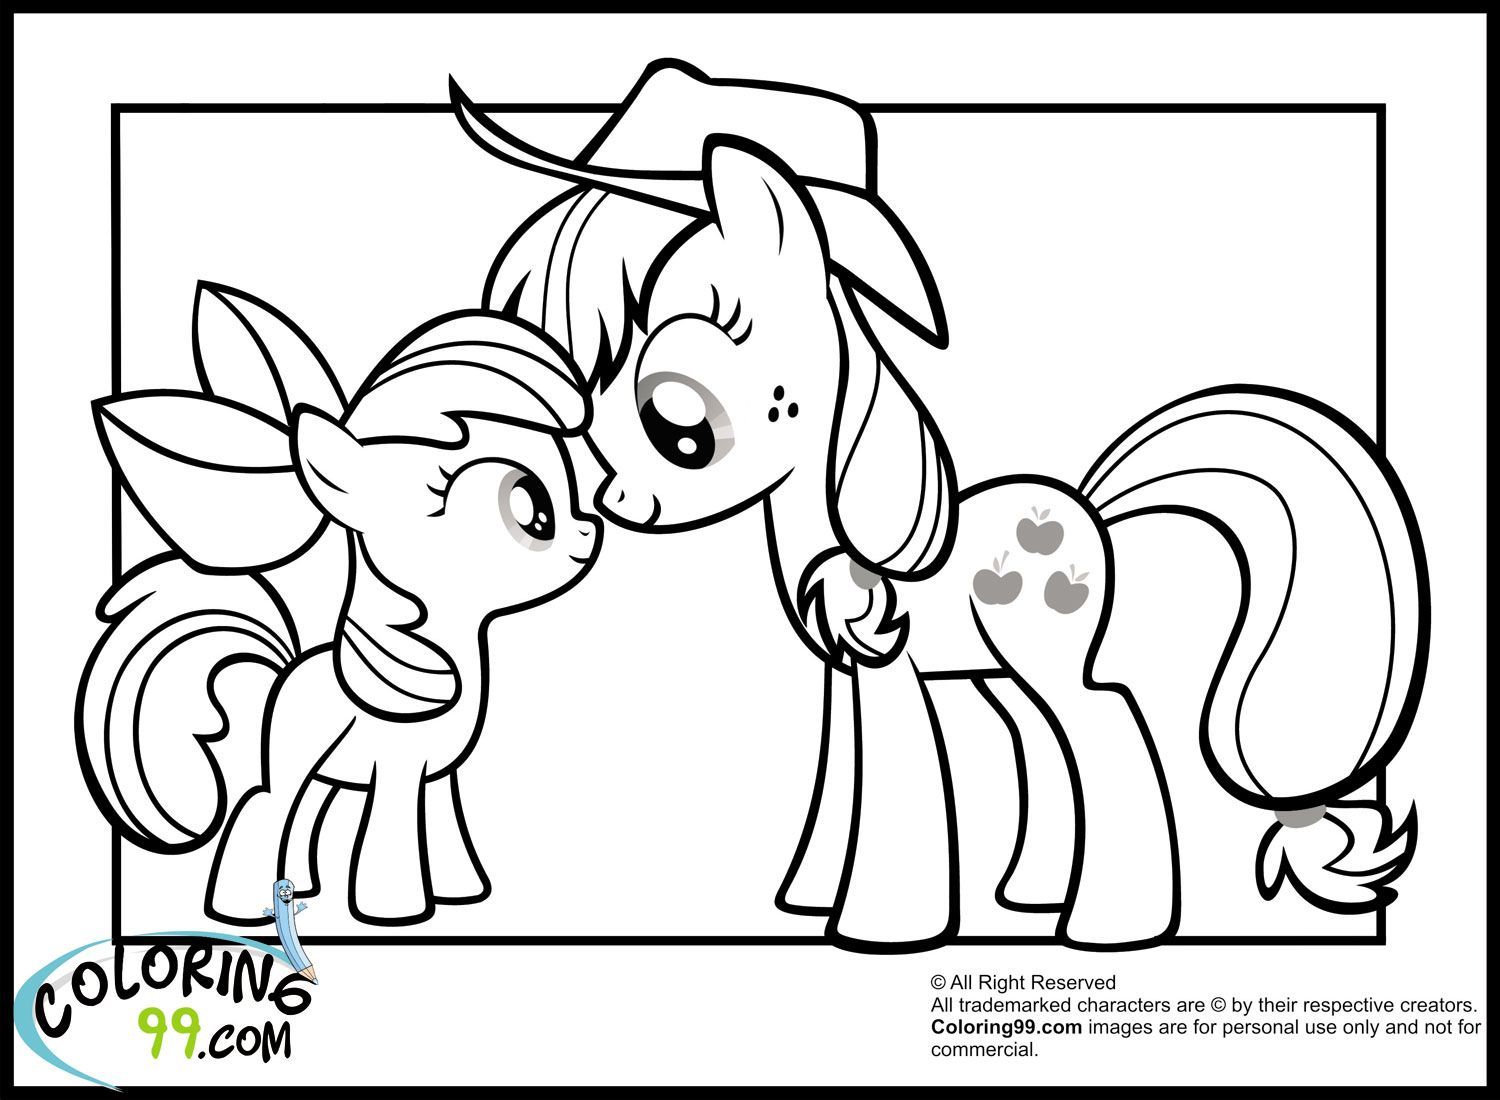 My little pony coloring pages sweetie belle - 1000 Images About On Pinterest Coloring Ice Cream Coloring Pages And Equestria Girls Coloring Pages My Little Pony